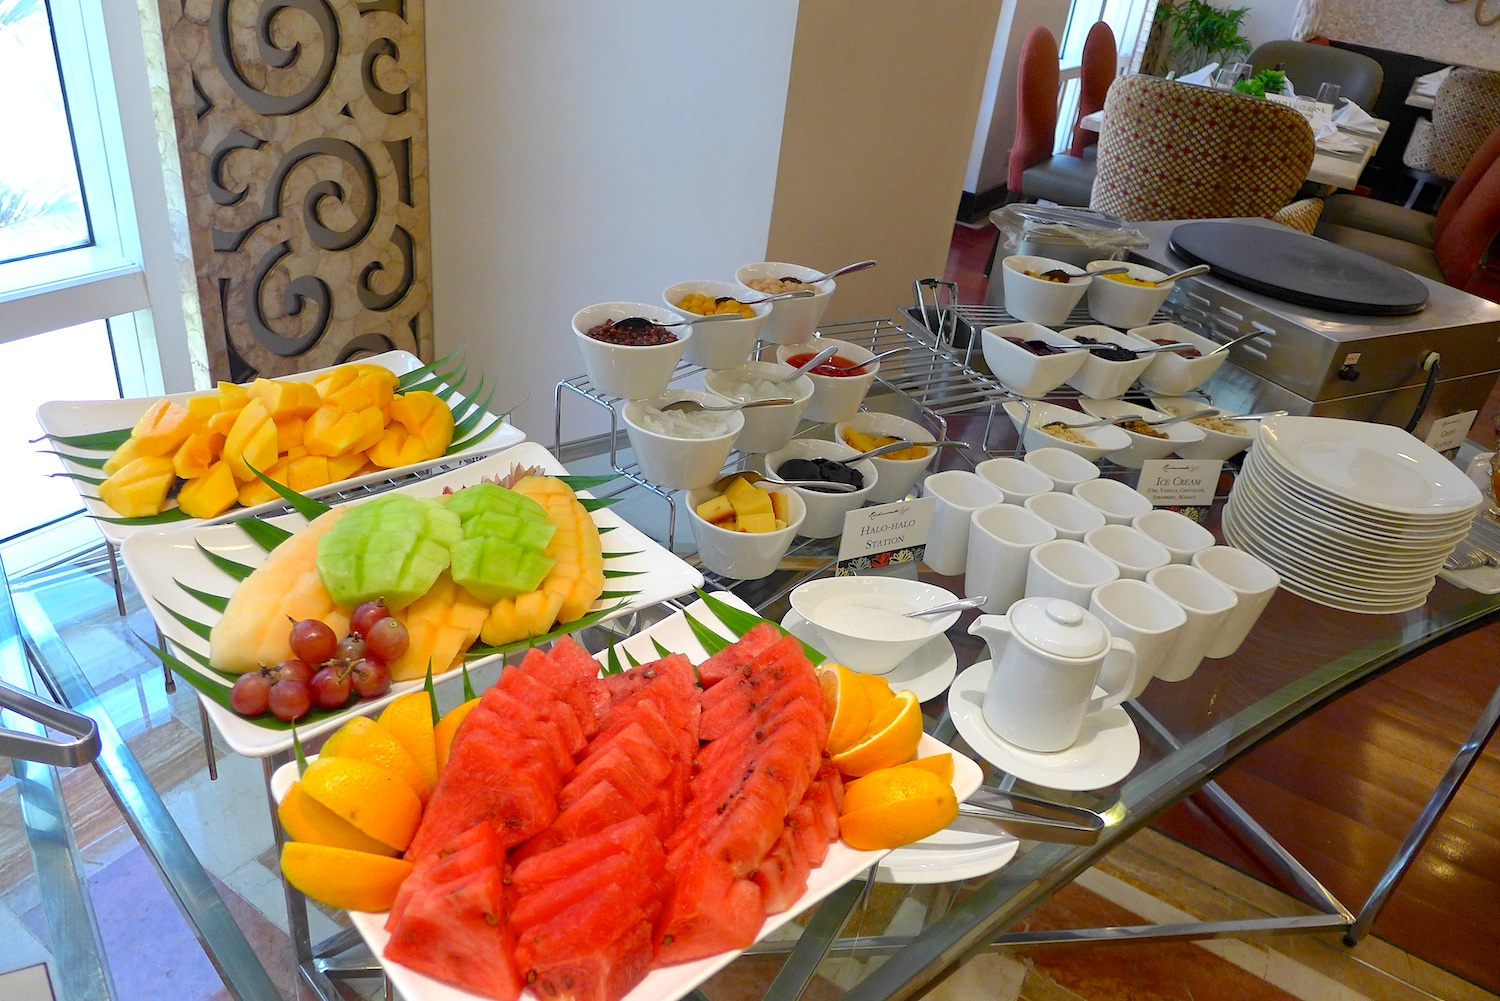 Fruits galore. Papaya, grapes, honeydew, melon, watermelon, oranges! Now those would be perfect to top your dining experience here. Or some lovely crepes if you feel a little like indulging!